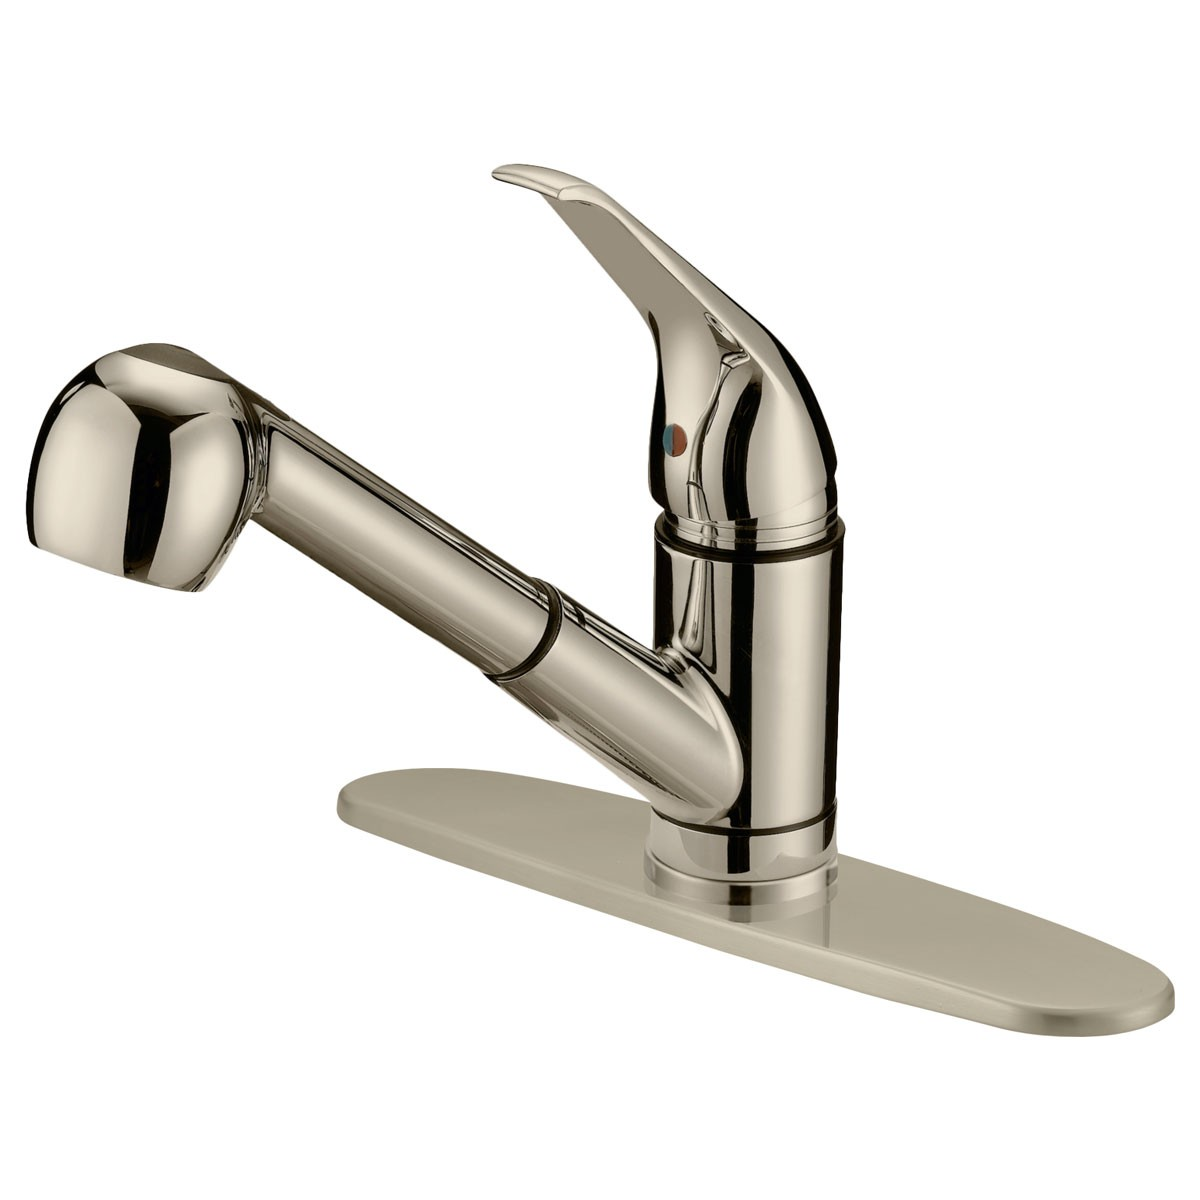 LK3B PULL OUT KITCHEN FAUCET, BRUSHED NICKEL FINISH - Cabinet ERA ...